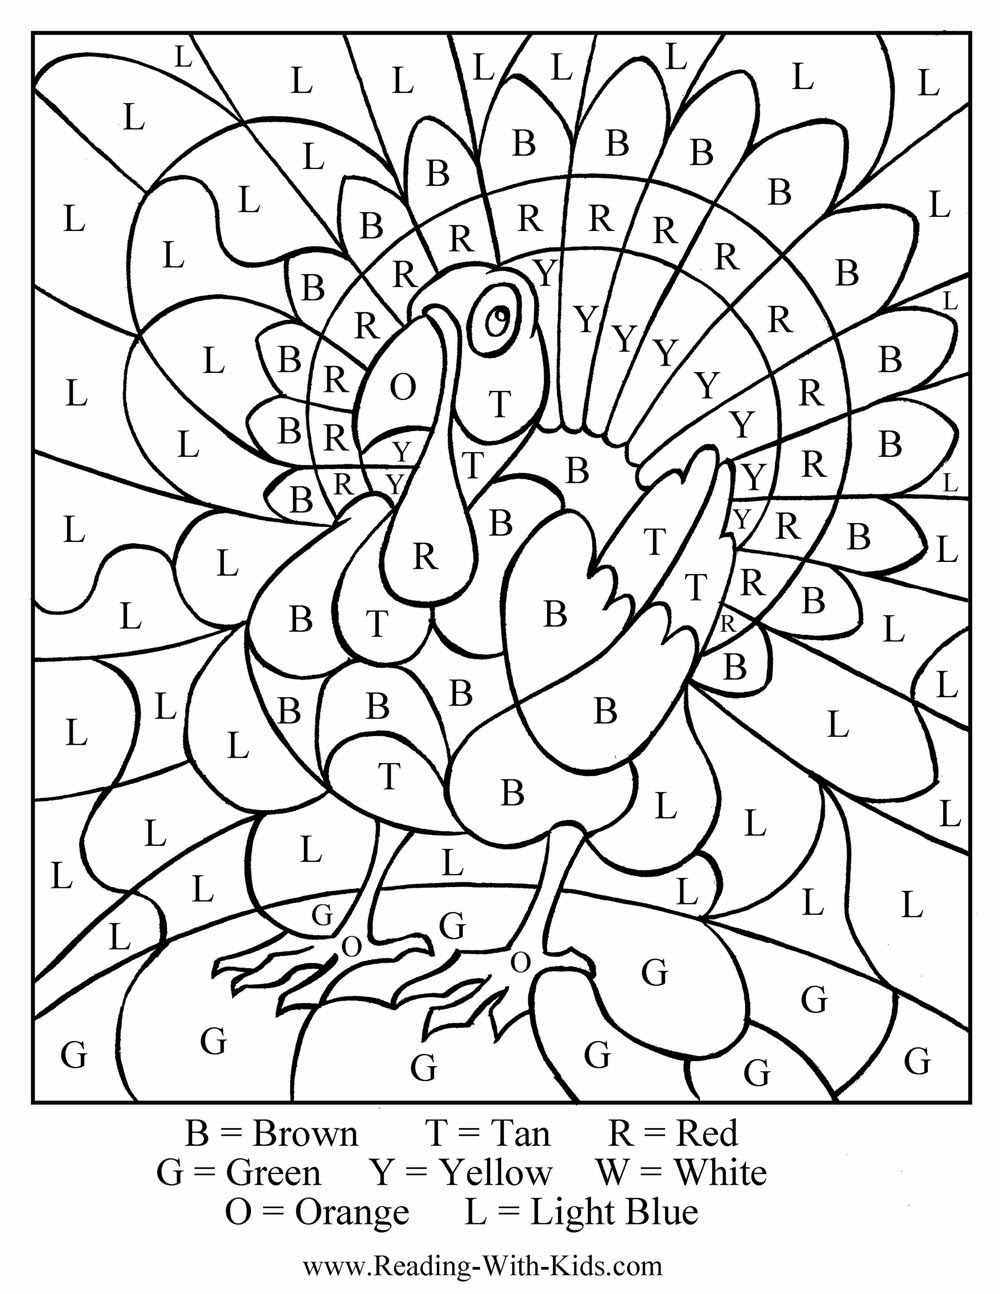 thansgiving printible coloring pages - photo#12